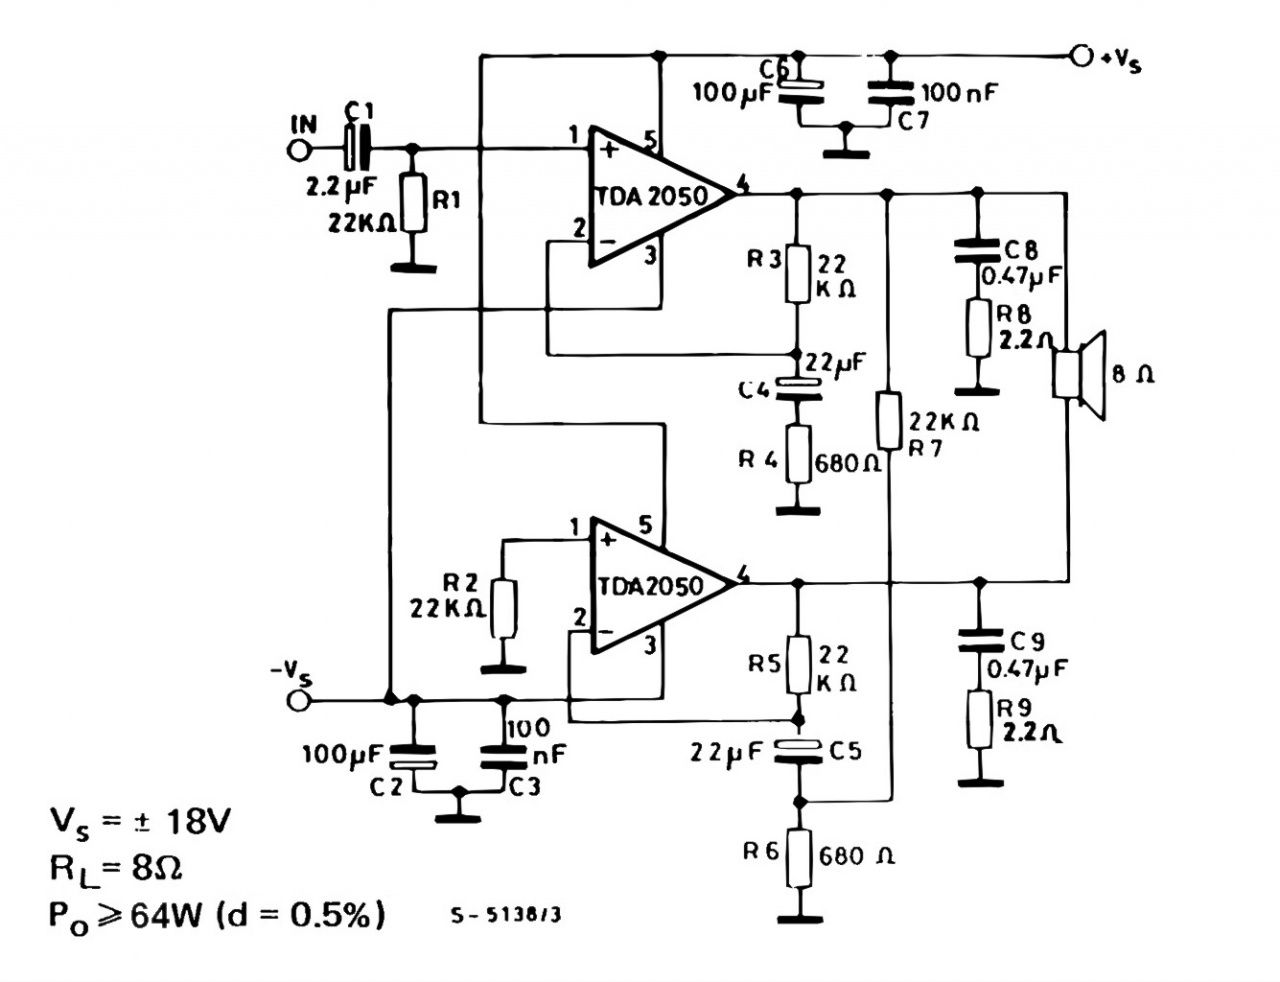 Tda2050 Bridge Amplifier Circuit Smart Wiring Diagrams 20 Watt Stereo Audio Using Tda2005 Diagram Google Search Tda2051 Guitar